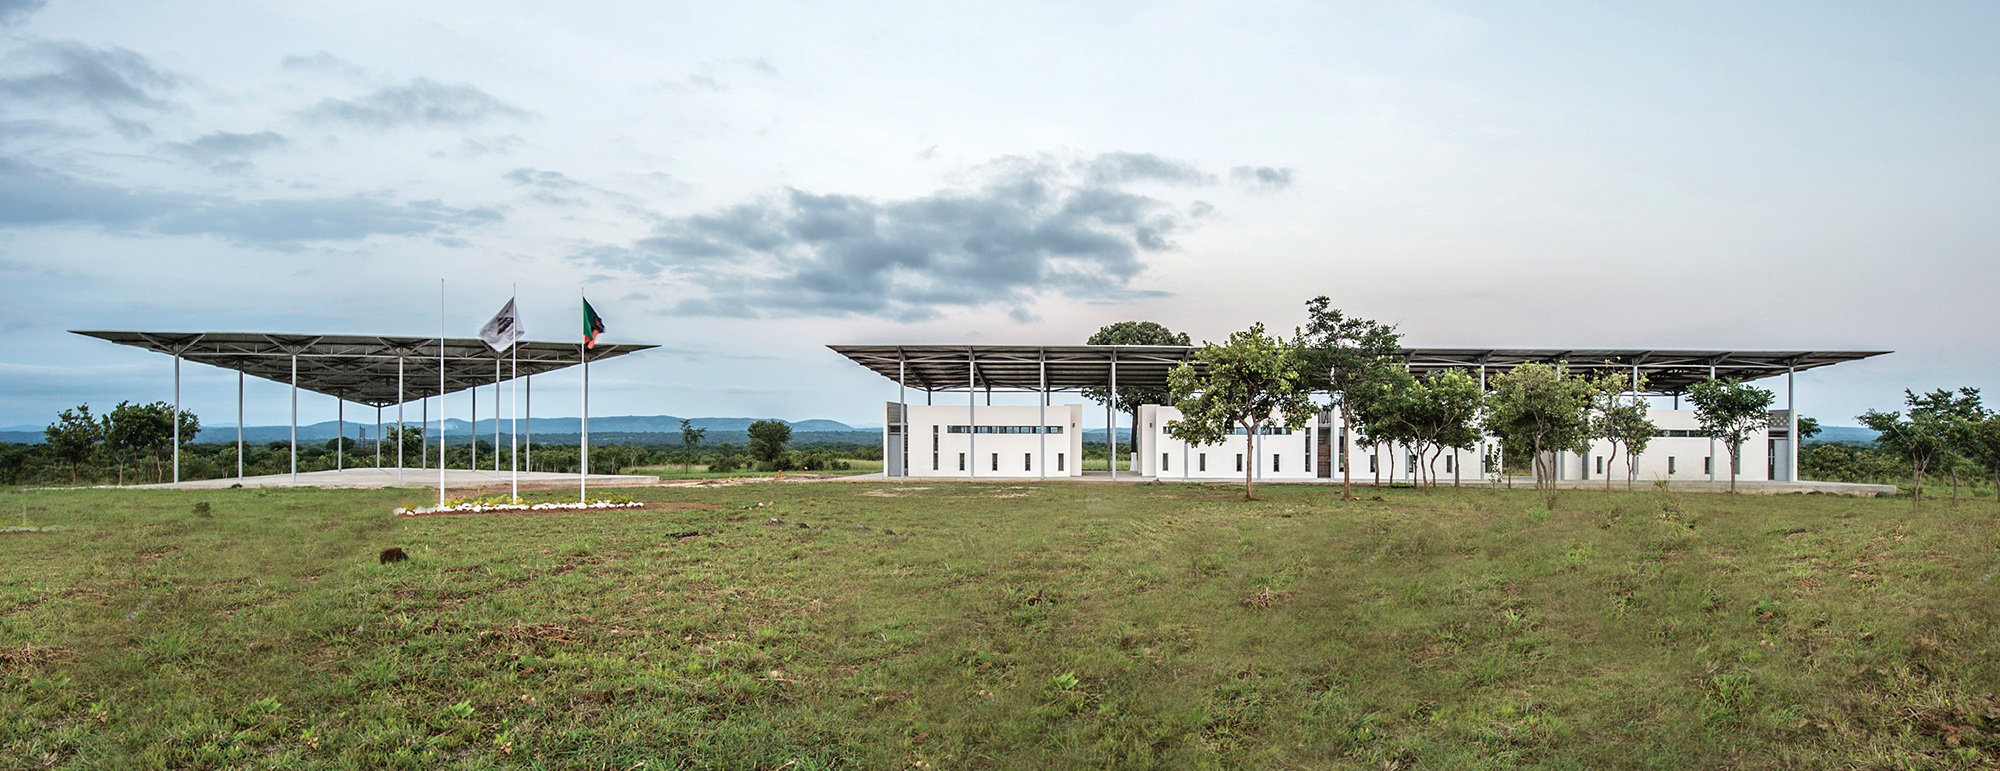 Chipakata children 39 s academy architect magazine ennead for Architecture firms in zambia